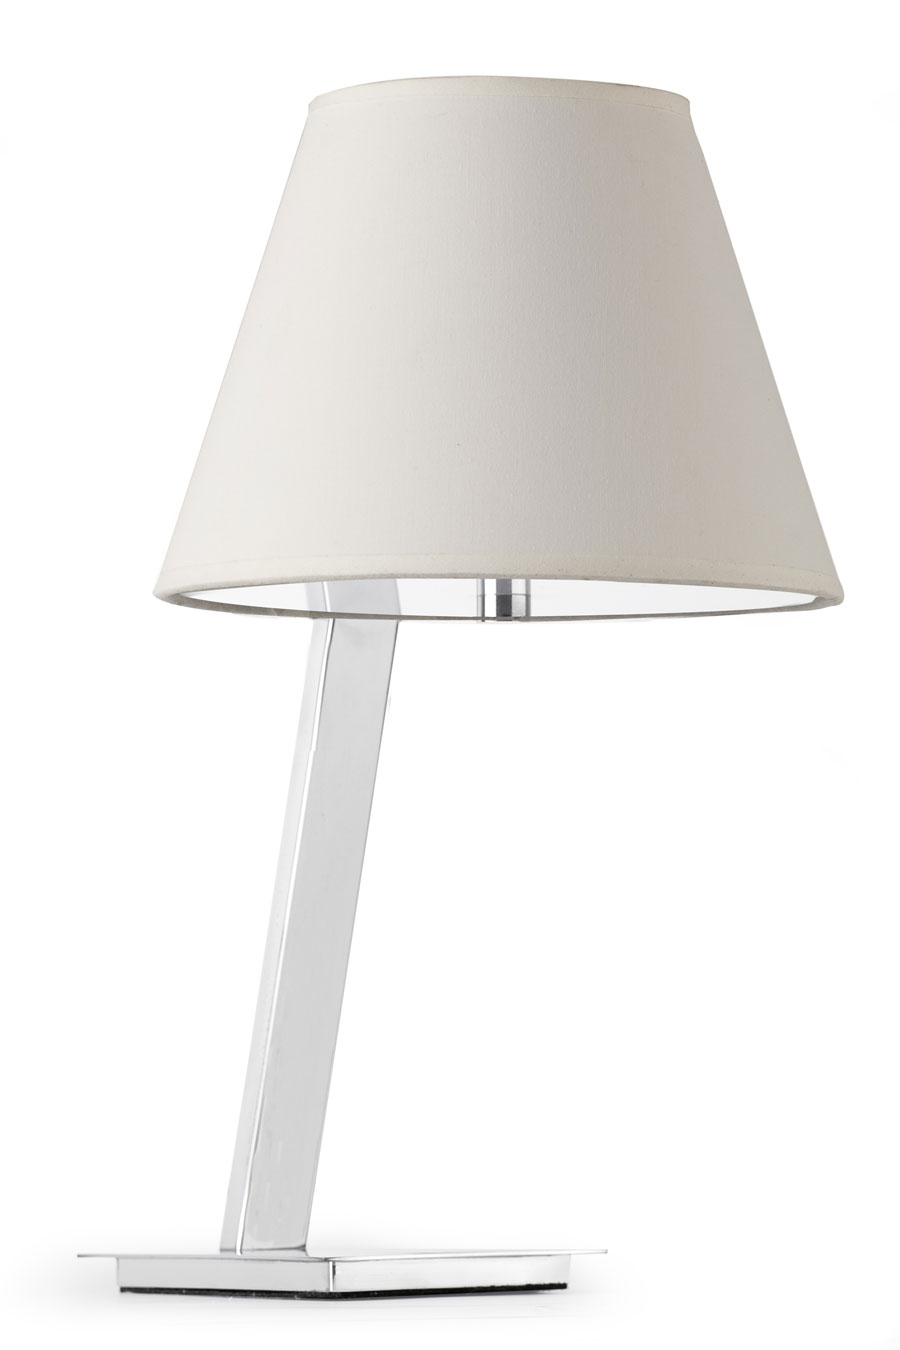 shade with chrome stand white inclined table lamp fabric Designer and nvN8wm0